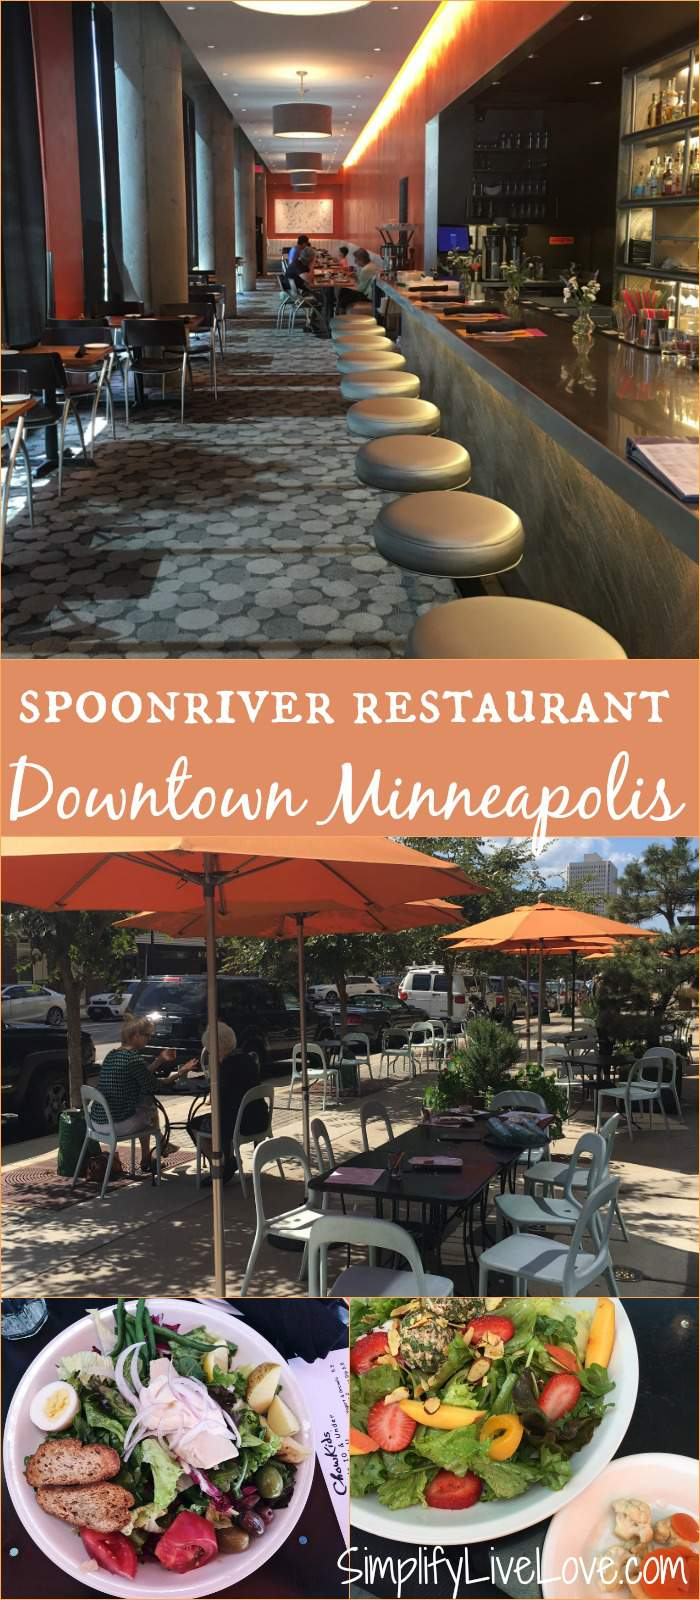 Spoonriver Restaurant . One of the most delicious Farm-to-Table Restaurants in the Twin Cities!